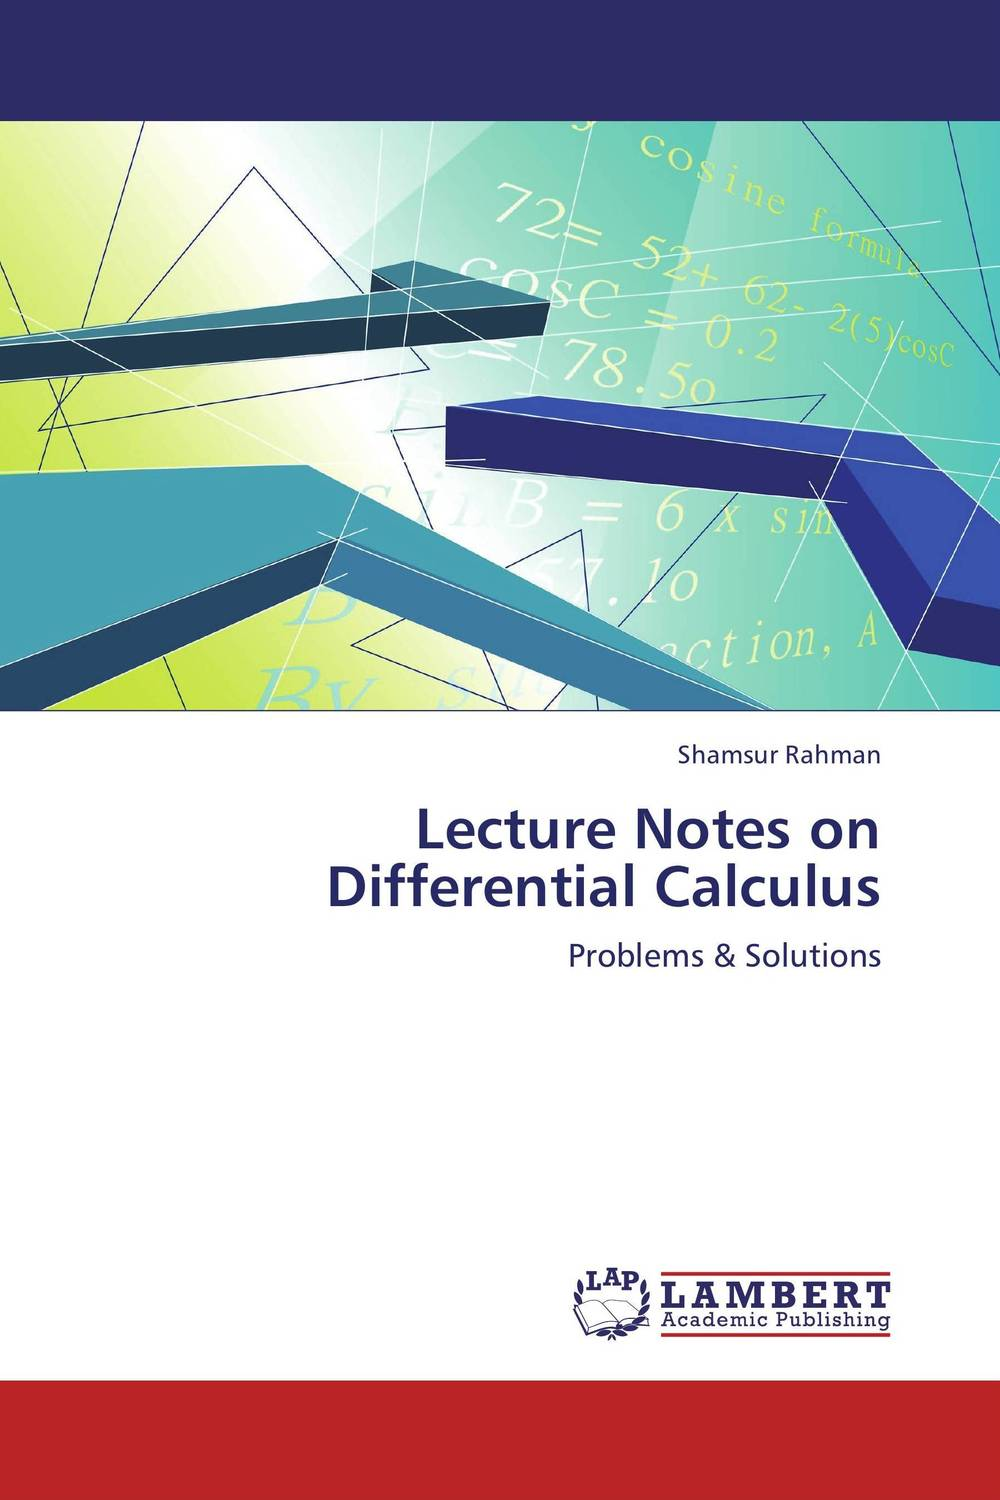 Lecture Notes on Differential Calculus kitred5l350unv35668 value kit rediform sales book red5l350 and universal standard self stick notes unv35668